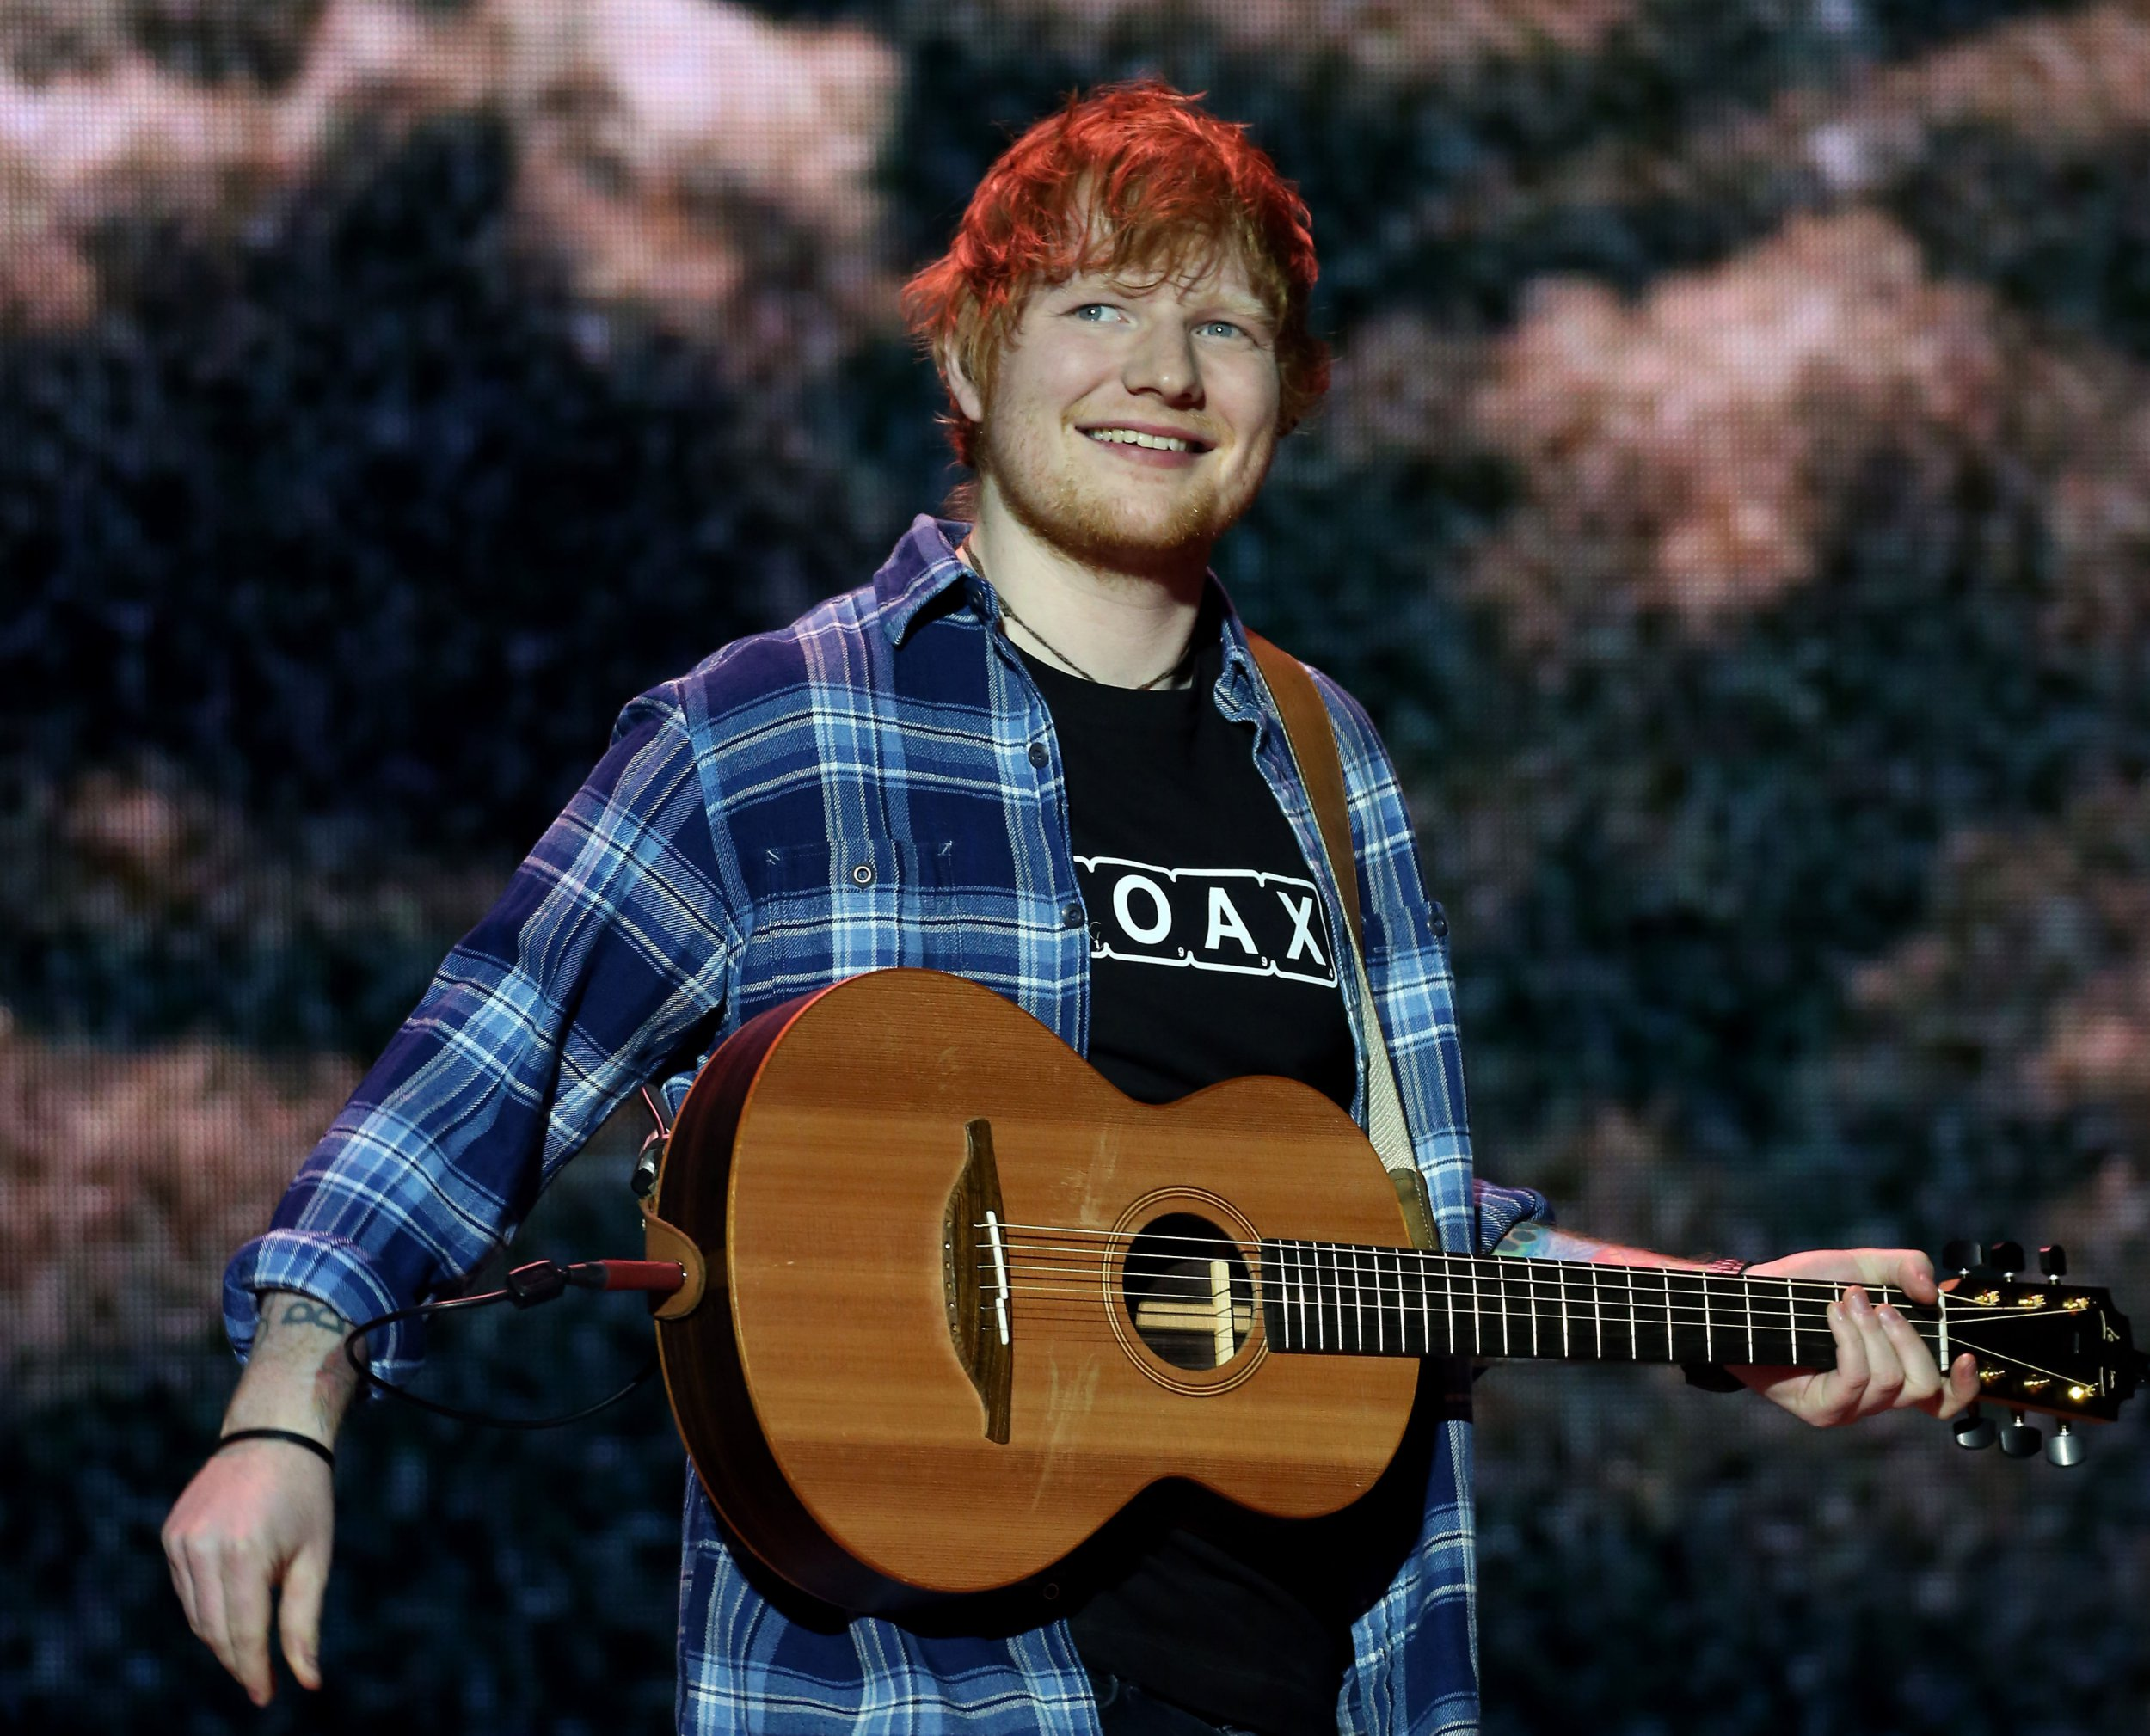 NHS staff fired after accessing Ed Sheeran's personal info for no reason